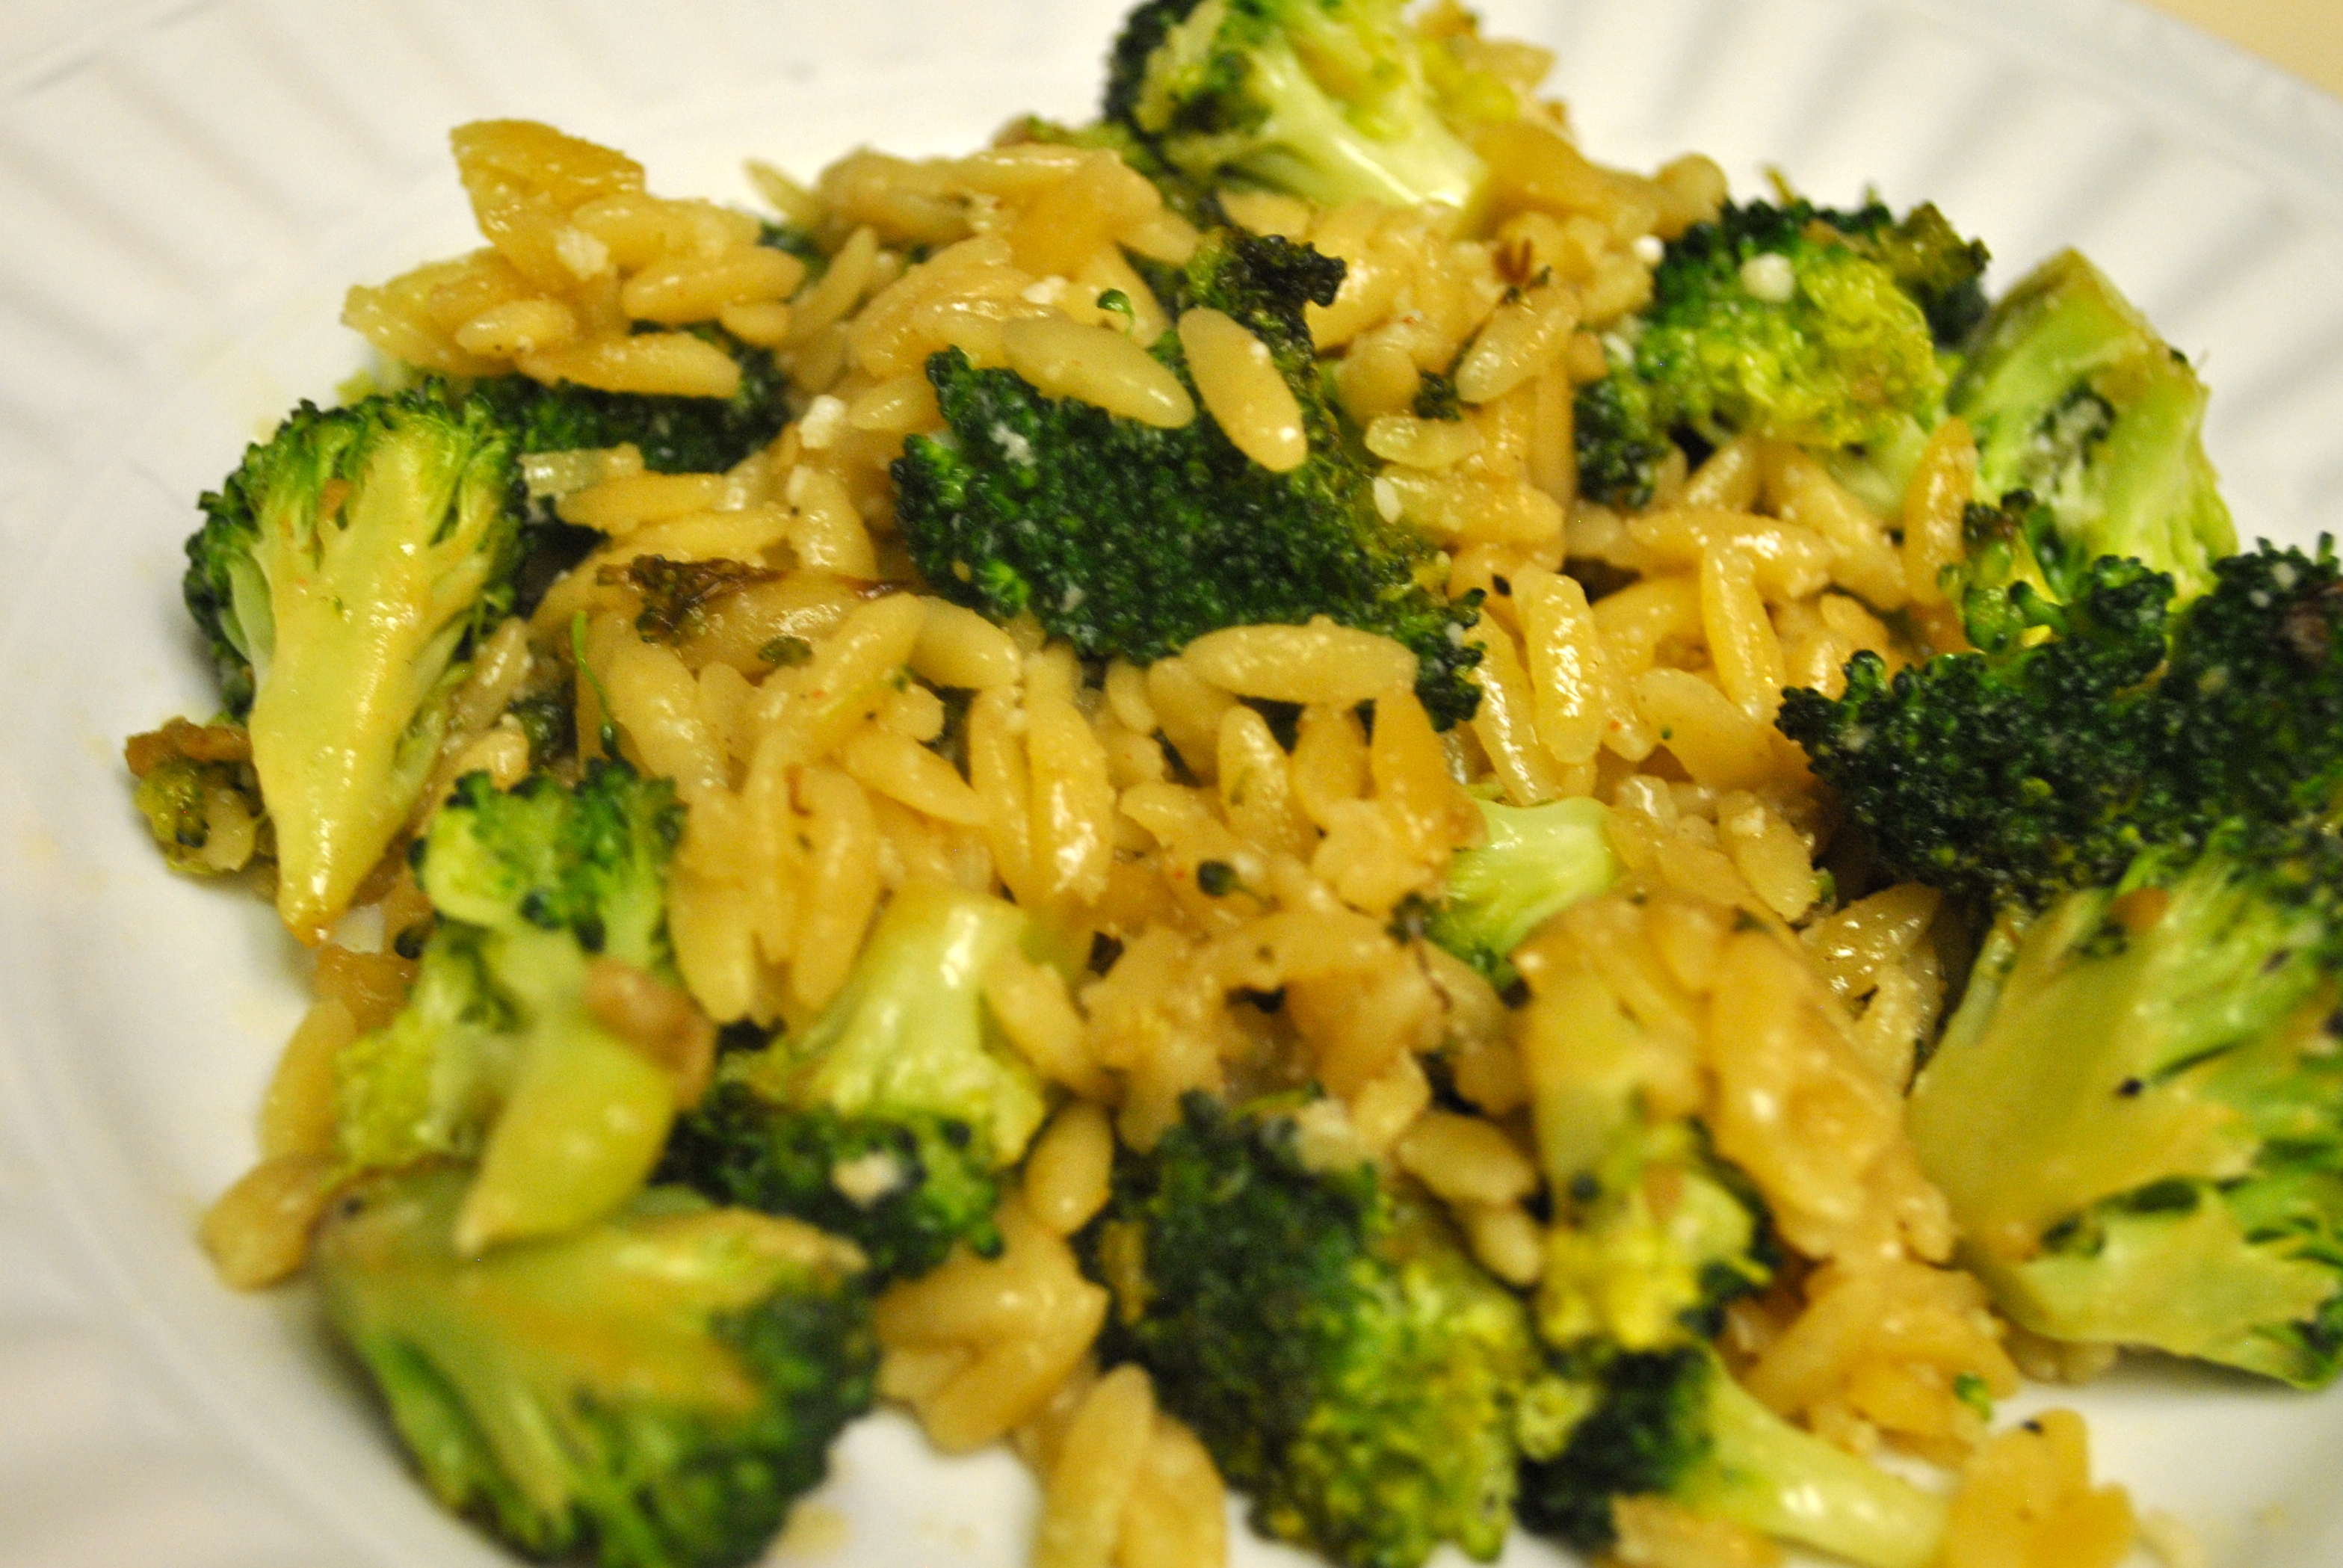 deliciously cheesey tasting broccoli and orzo dish. I created this ...